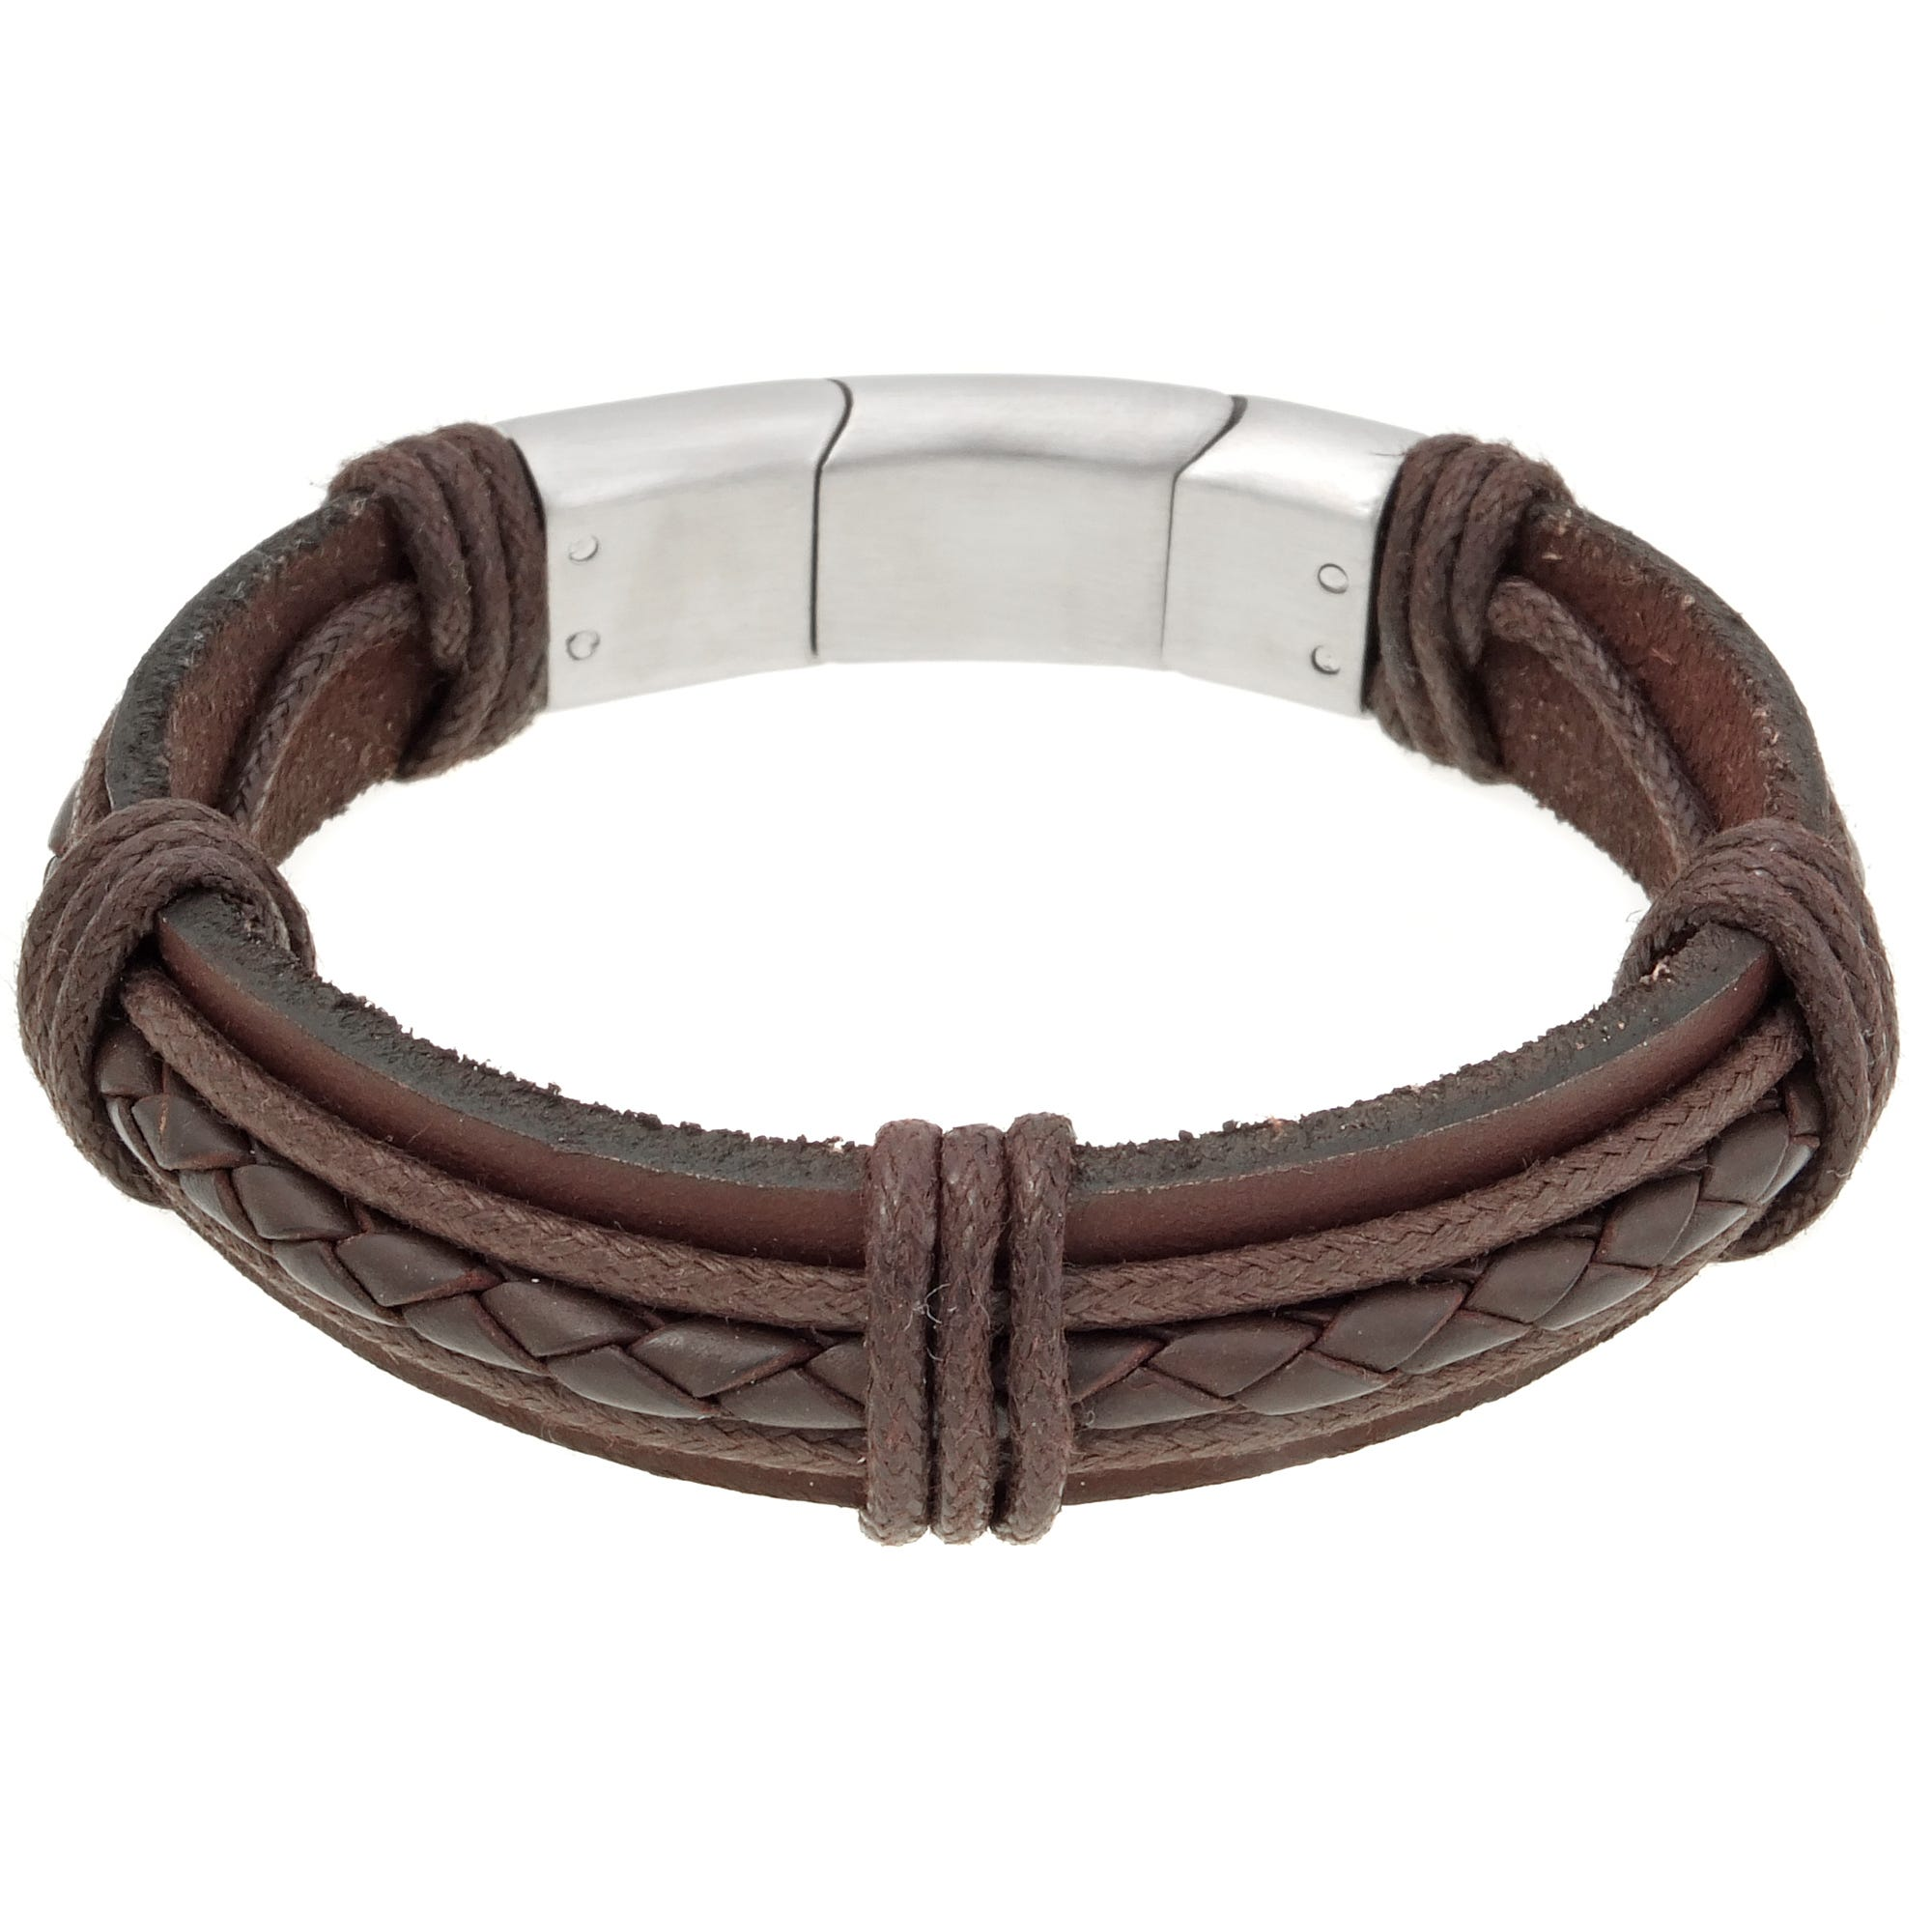 Men's Stainless Steel Clasp Brown Leather Braided Bracelet